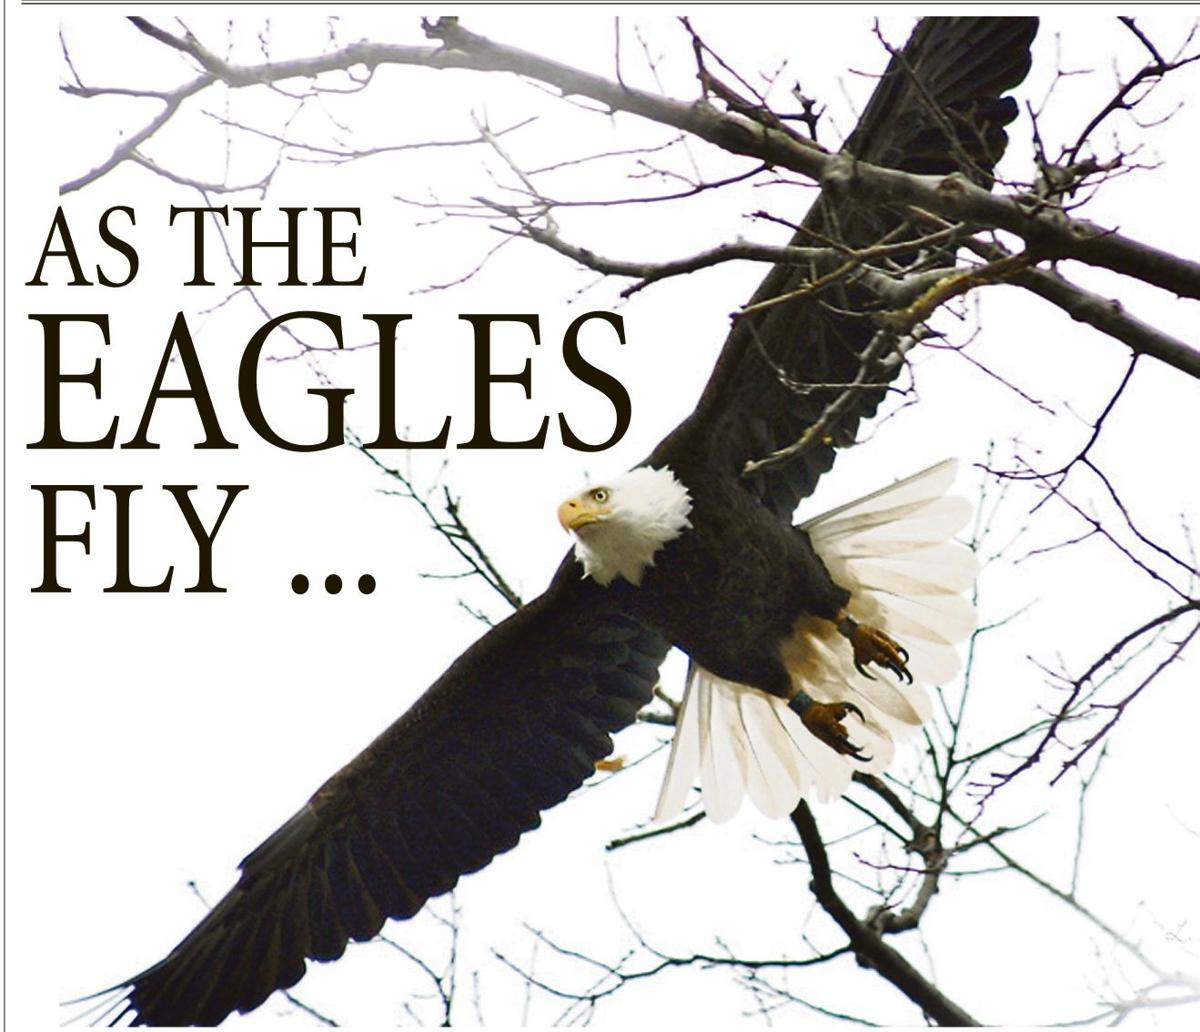 THE EAGLES ARE LANDING: A few of the majestic birds have returned to ...